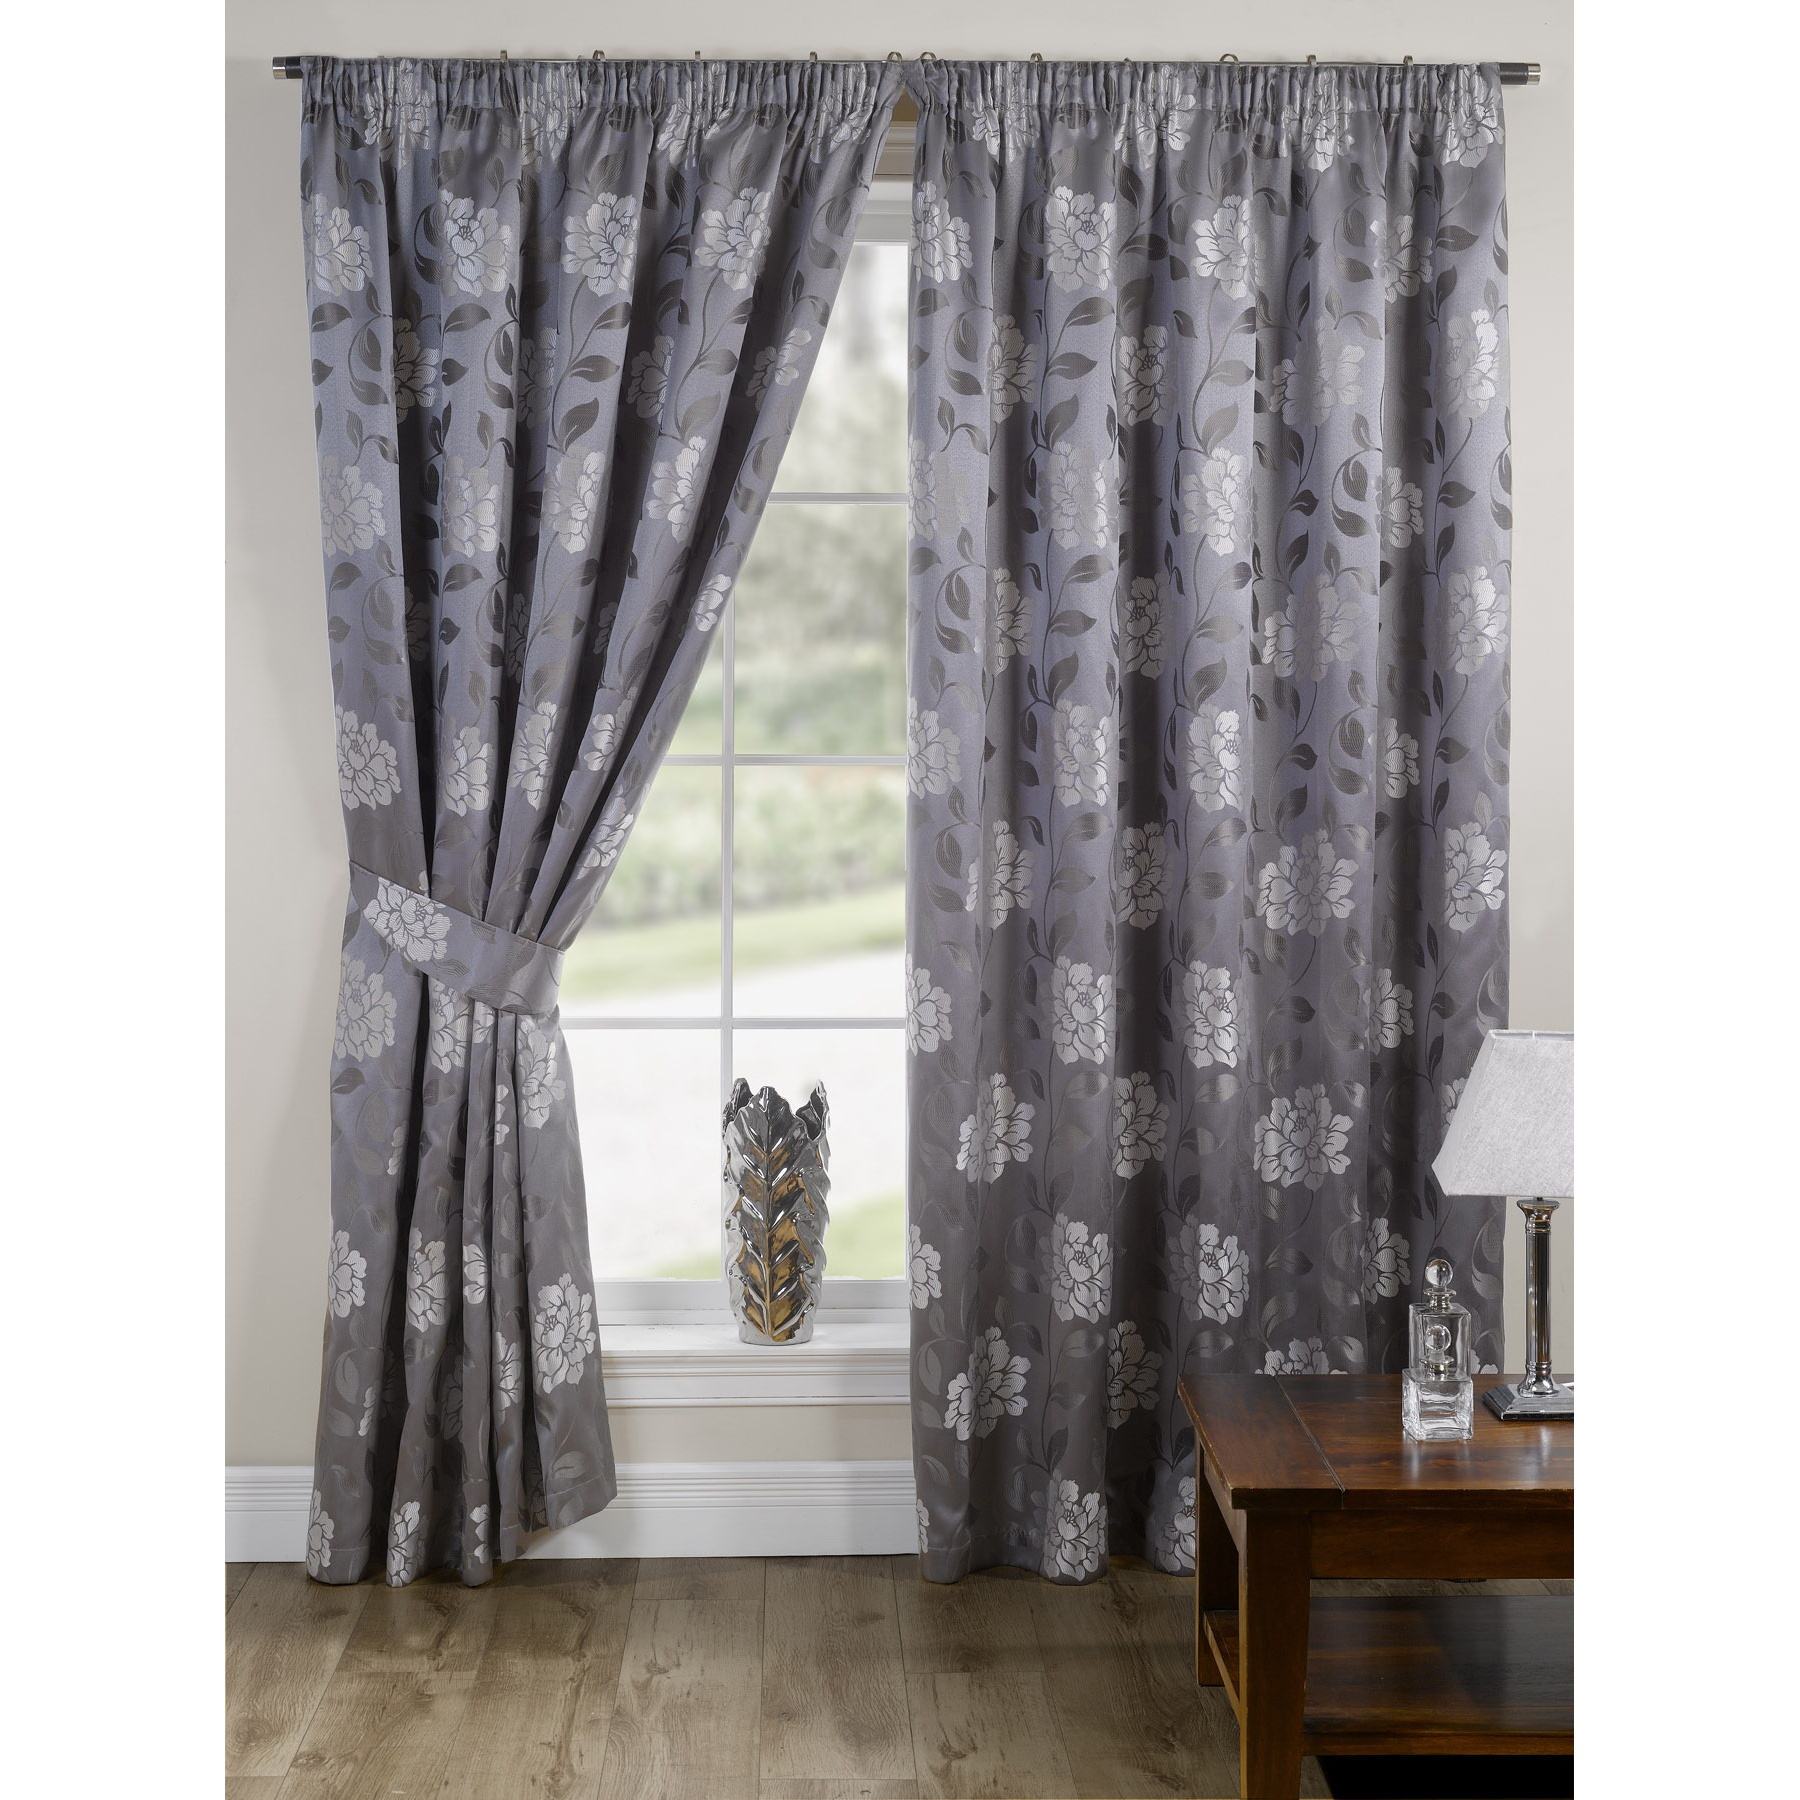 Davina fully lined ready made floral patterned curtains for Home drapes and curtains